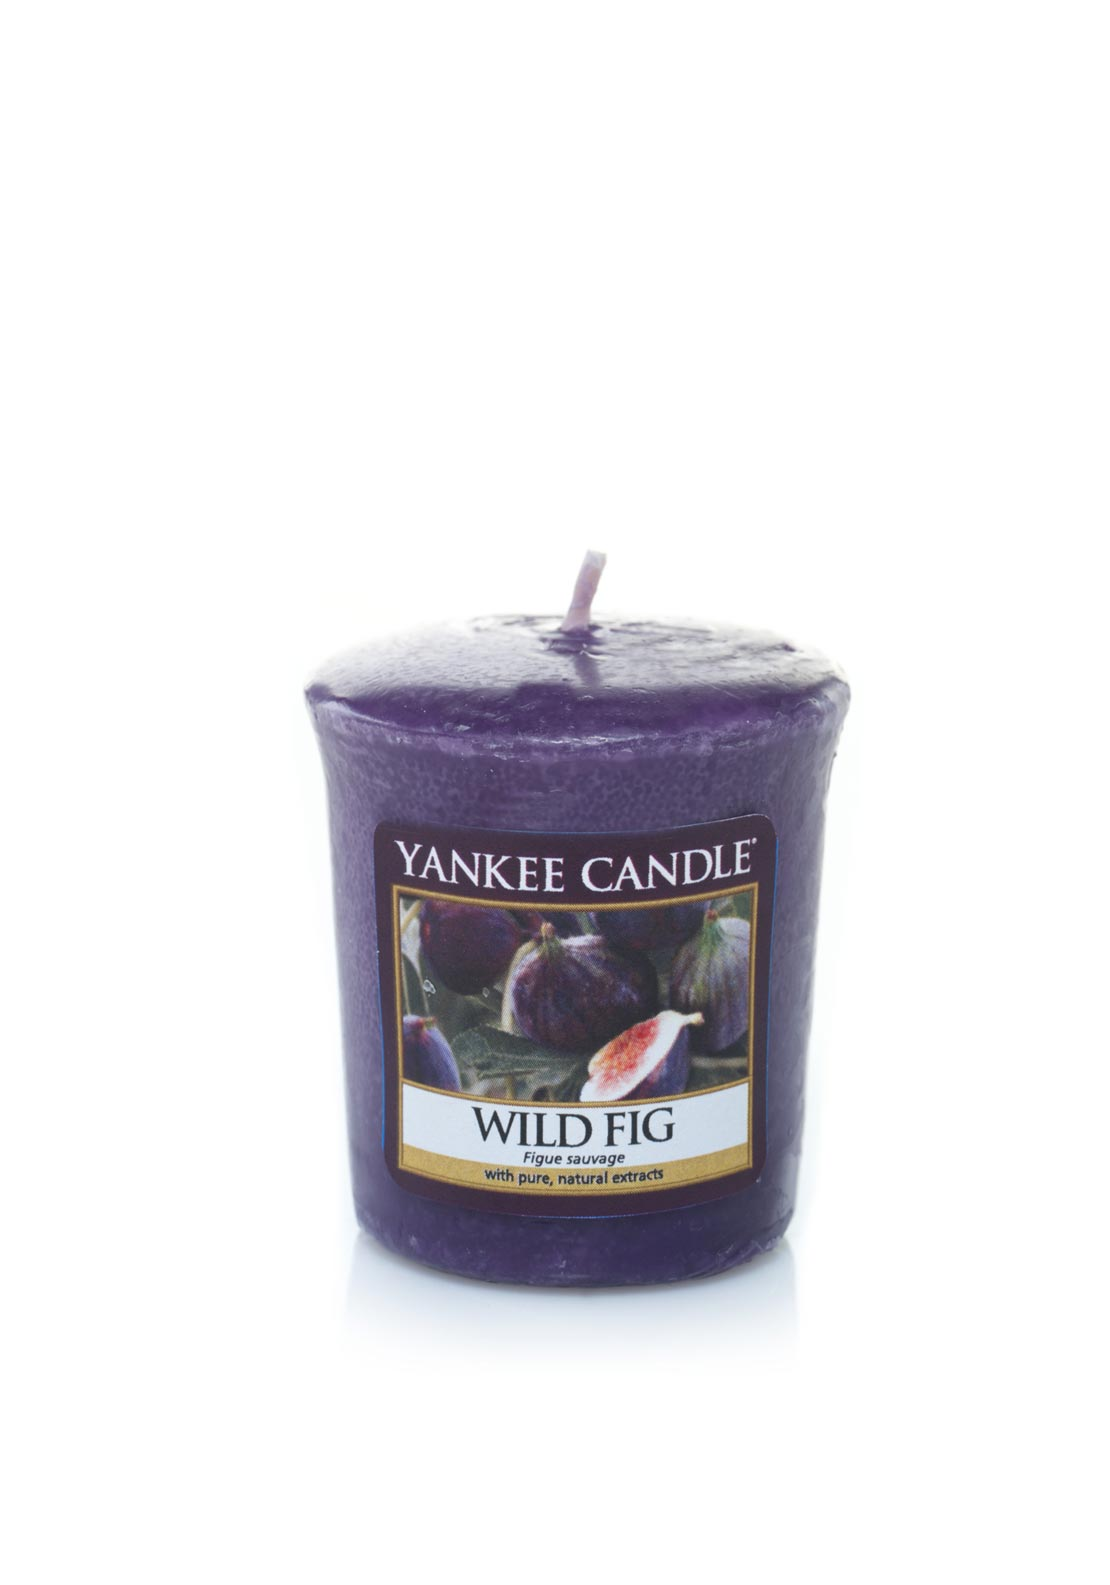 Yankee Candle Sampler Votive Candle, Wild Fig